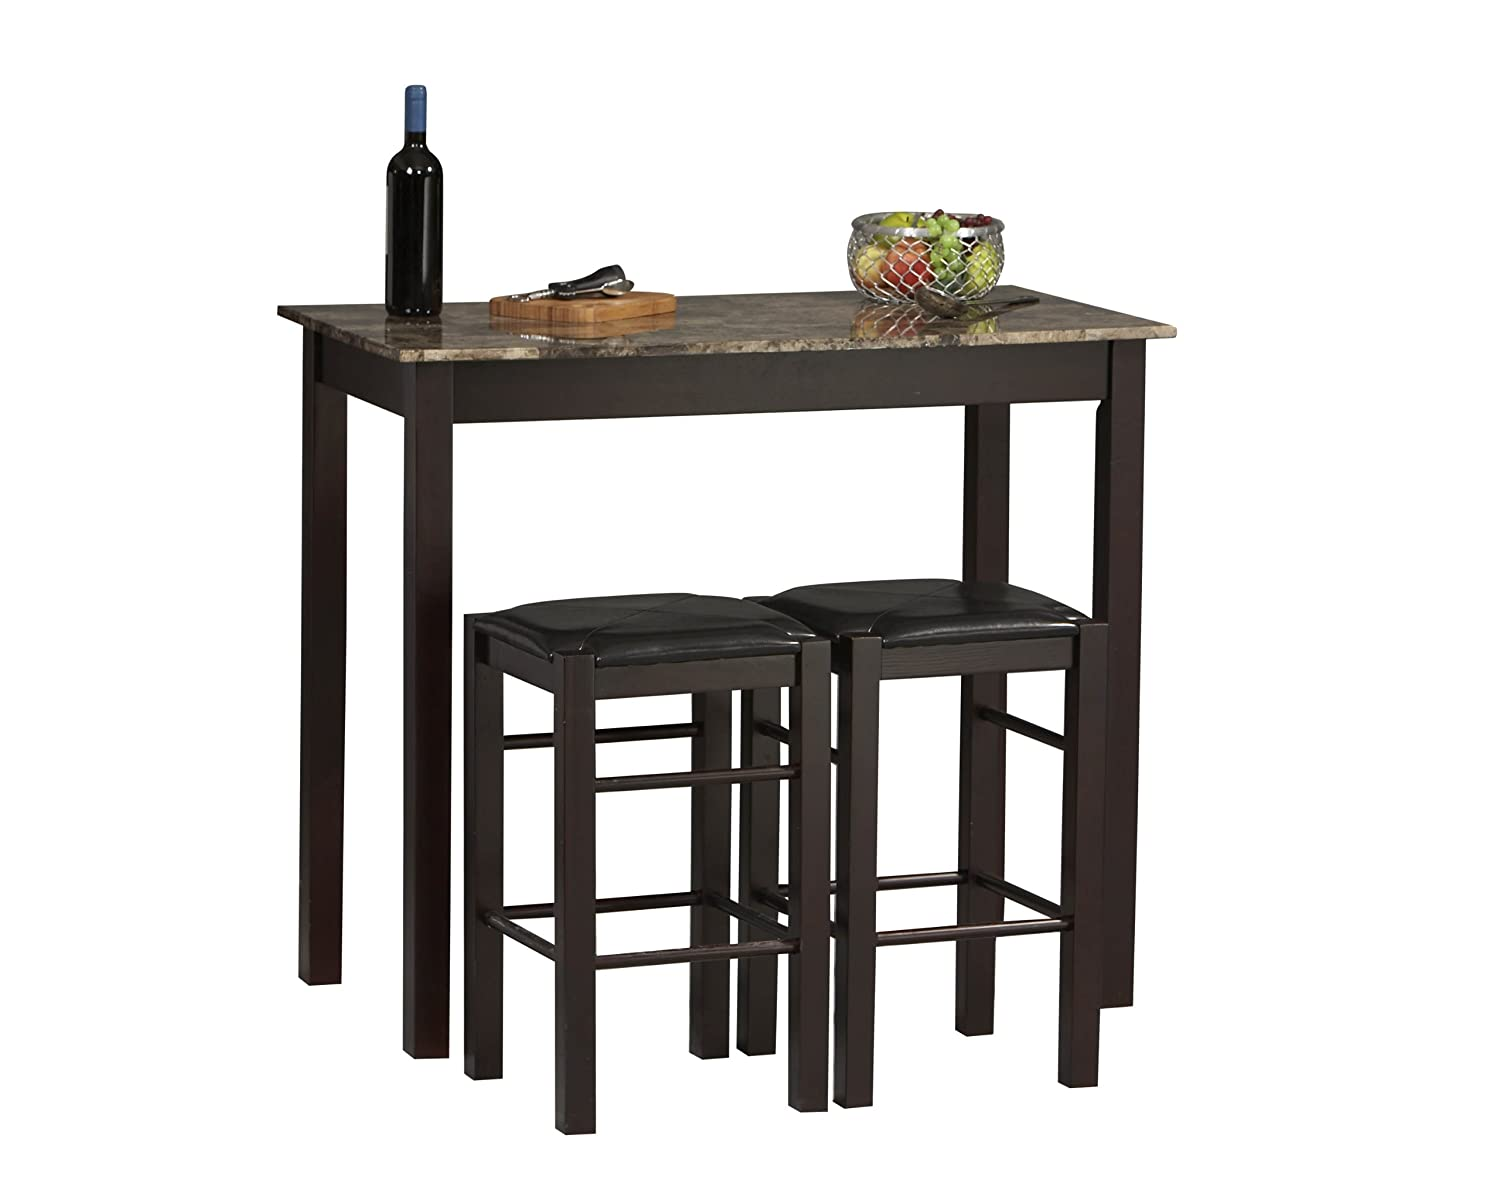 sc 1 st  Amazon.com : bar stool kitchen table - islam-shia.org